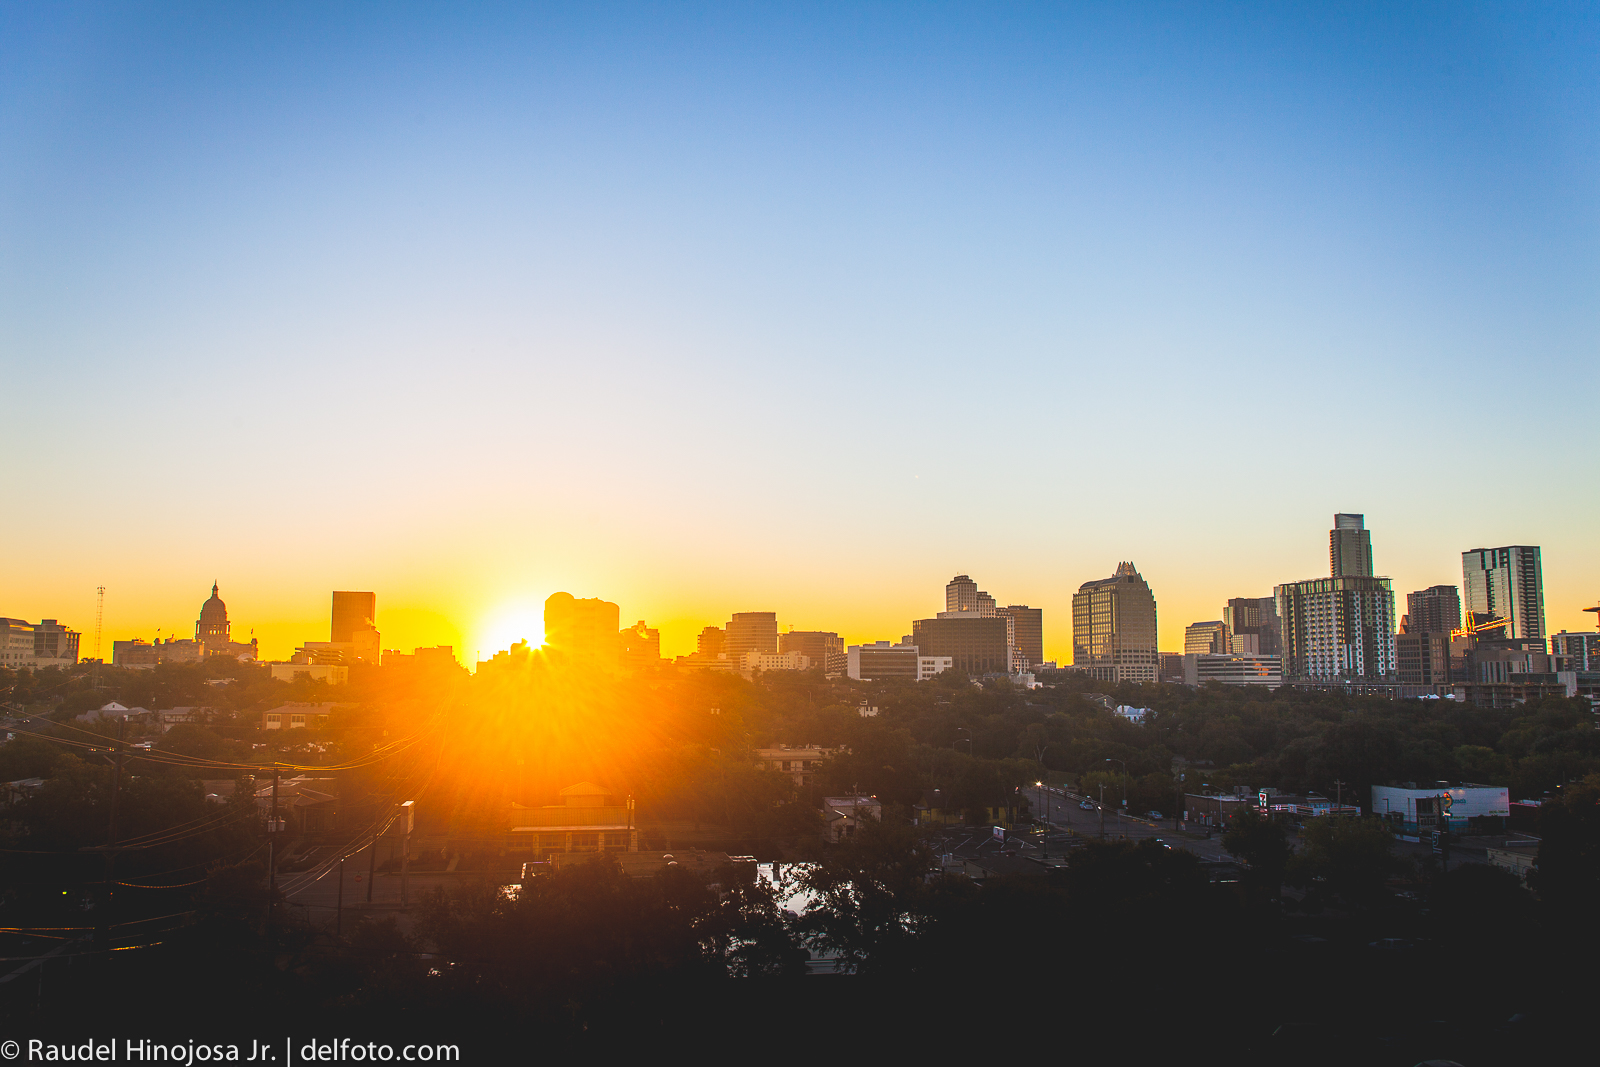 sunrise in downtown austin texas city urban landscape sunburst